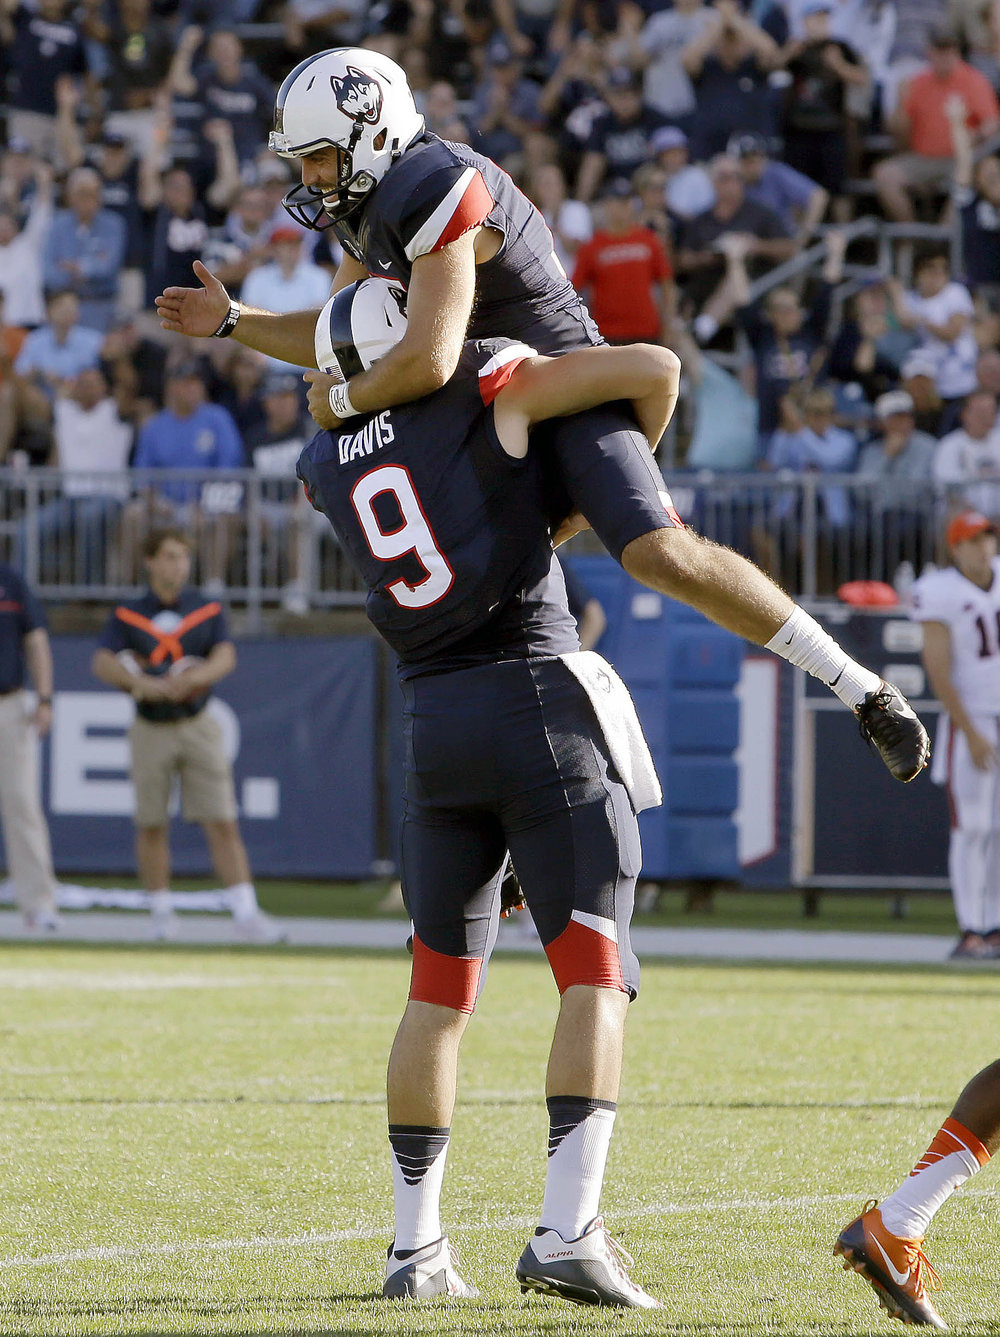 Connecticut placekicker Bobby Puyol, top, celebrates his game-winning field goal with Tyler Davis (9) in the second half of an NCAA college football game against Virginia, Saturday, Sept. 17, 2016, in East Hartford, Conn. Connecticut won 13-10. (Bill Sikes/AP)